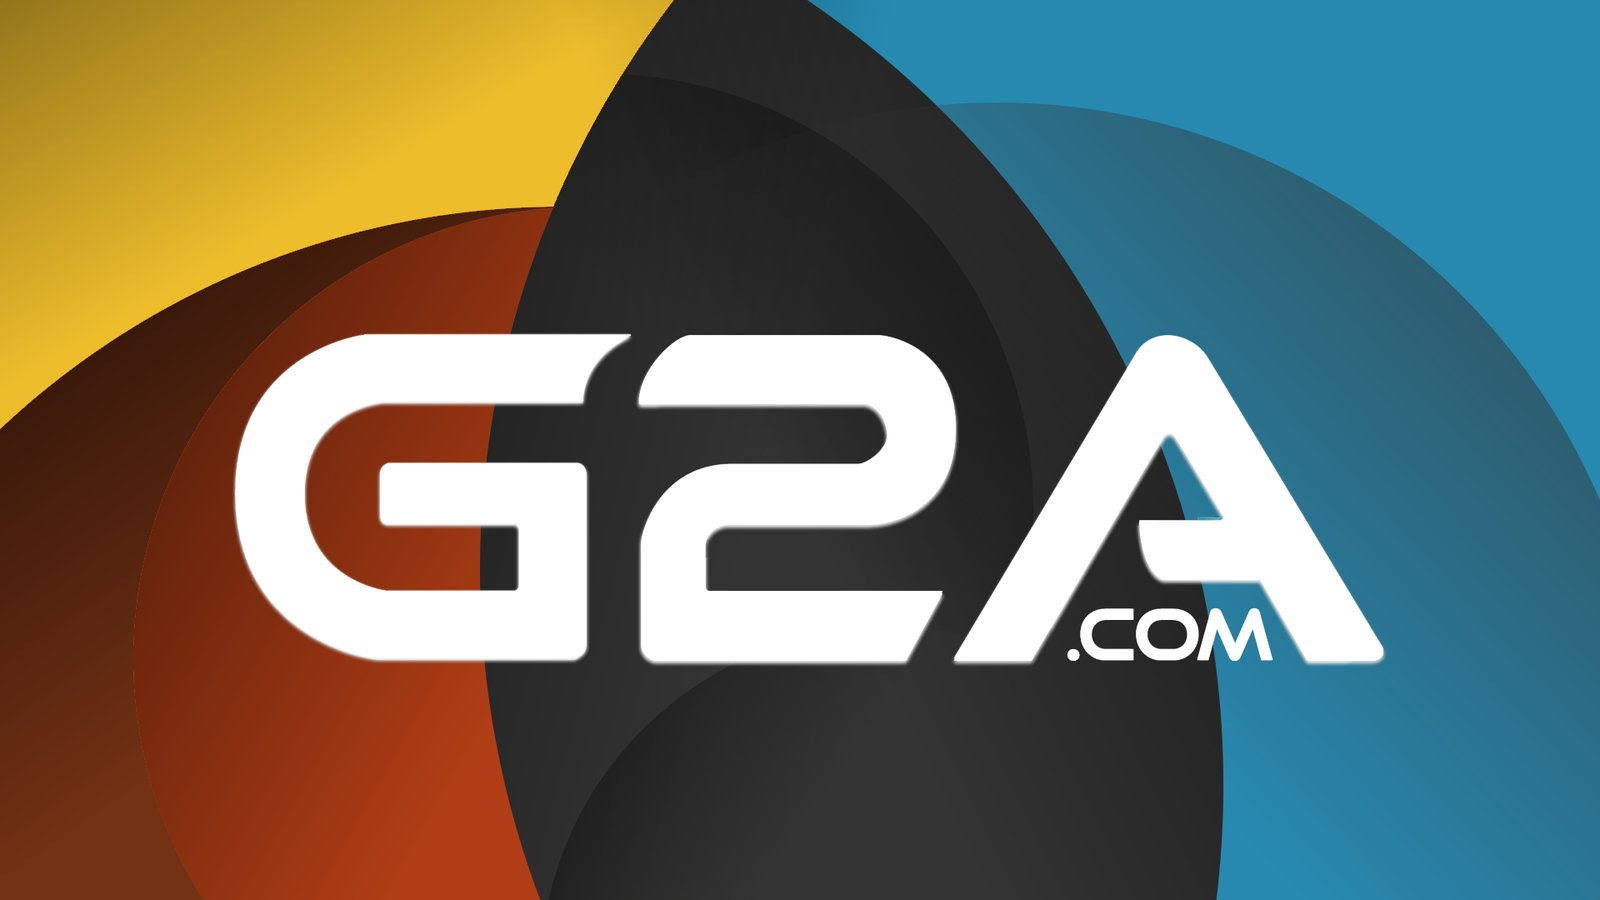 G2A is really digging its hole deeper screenshot